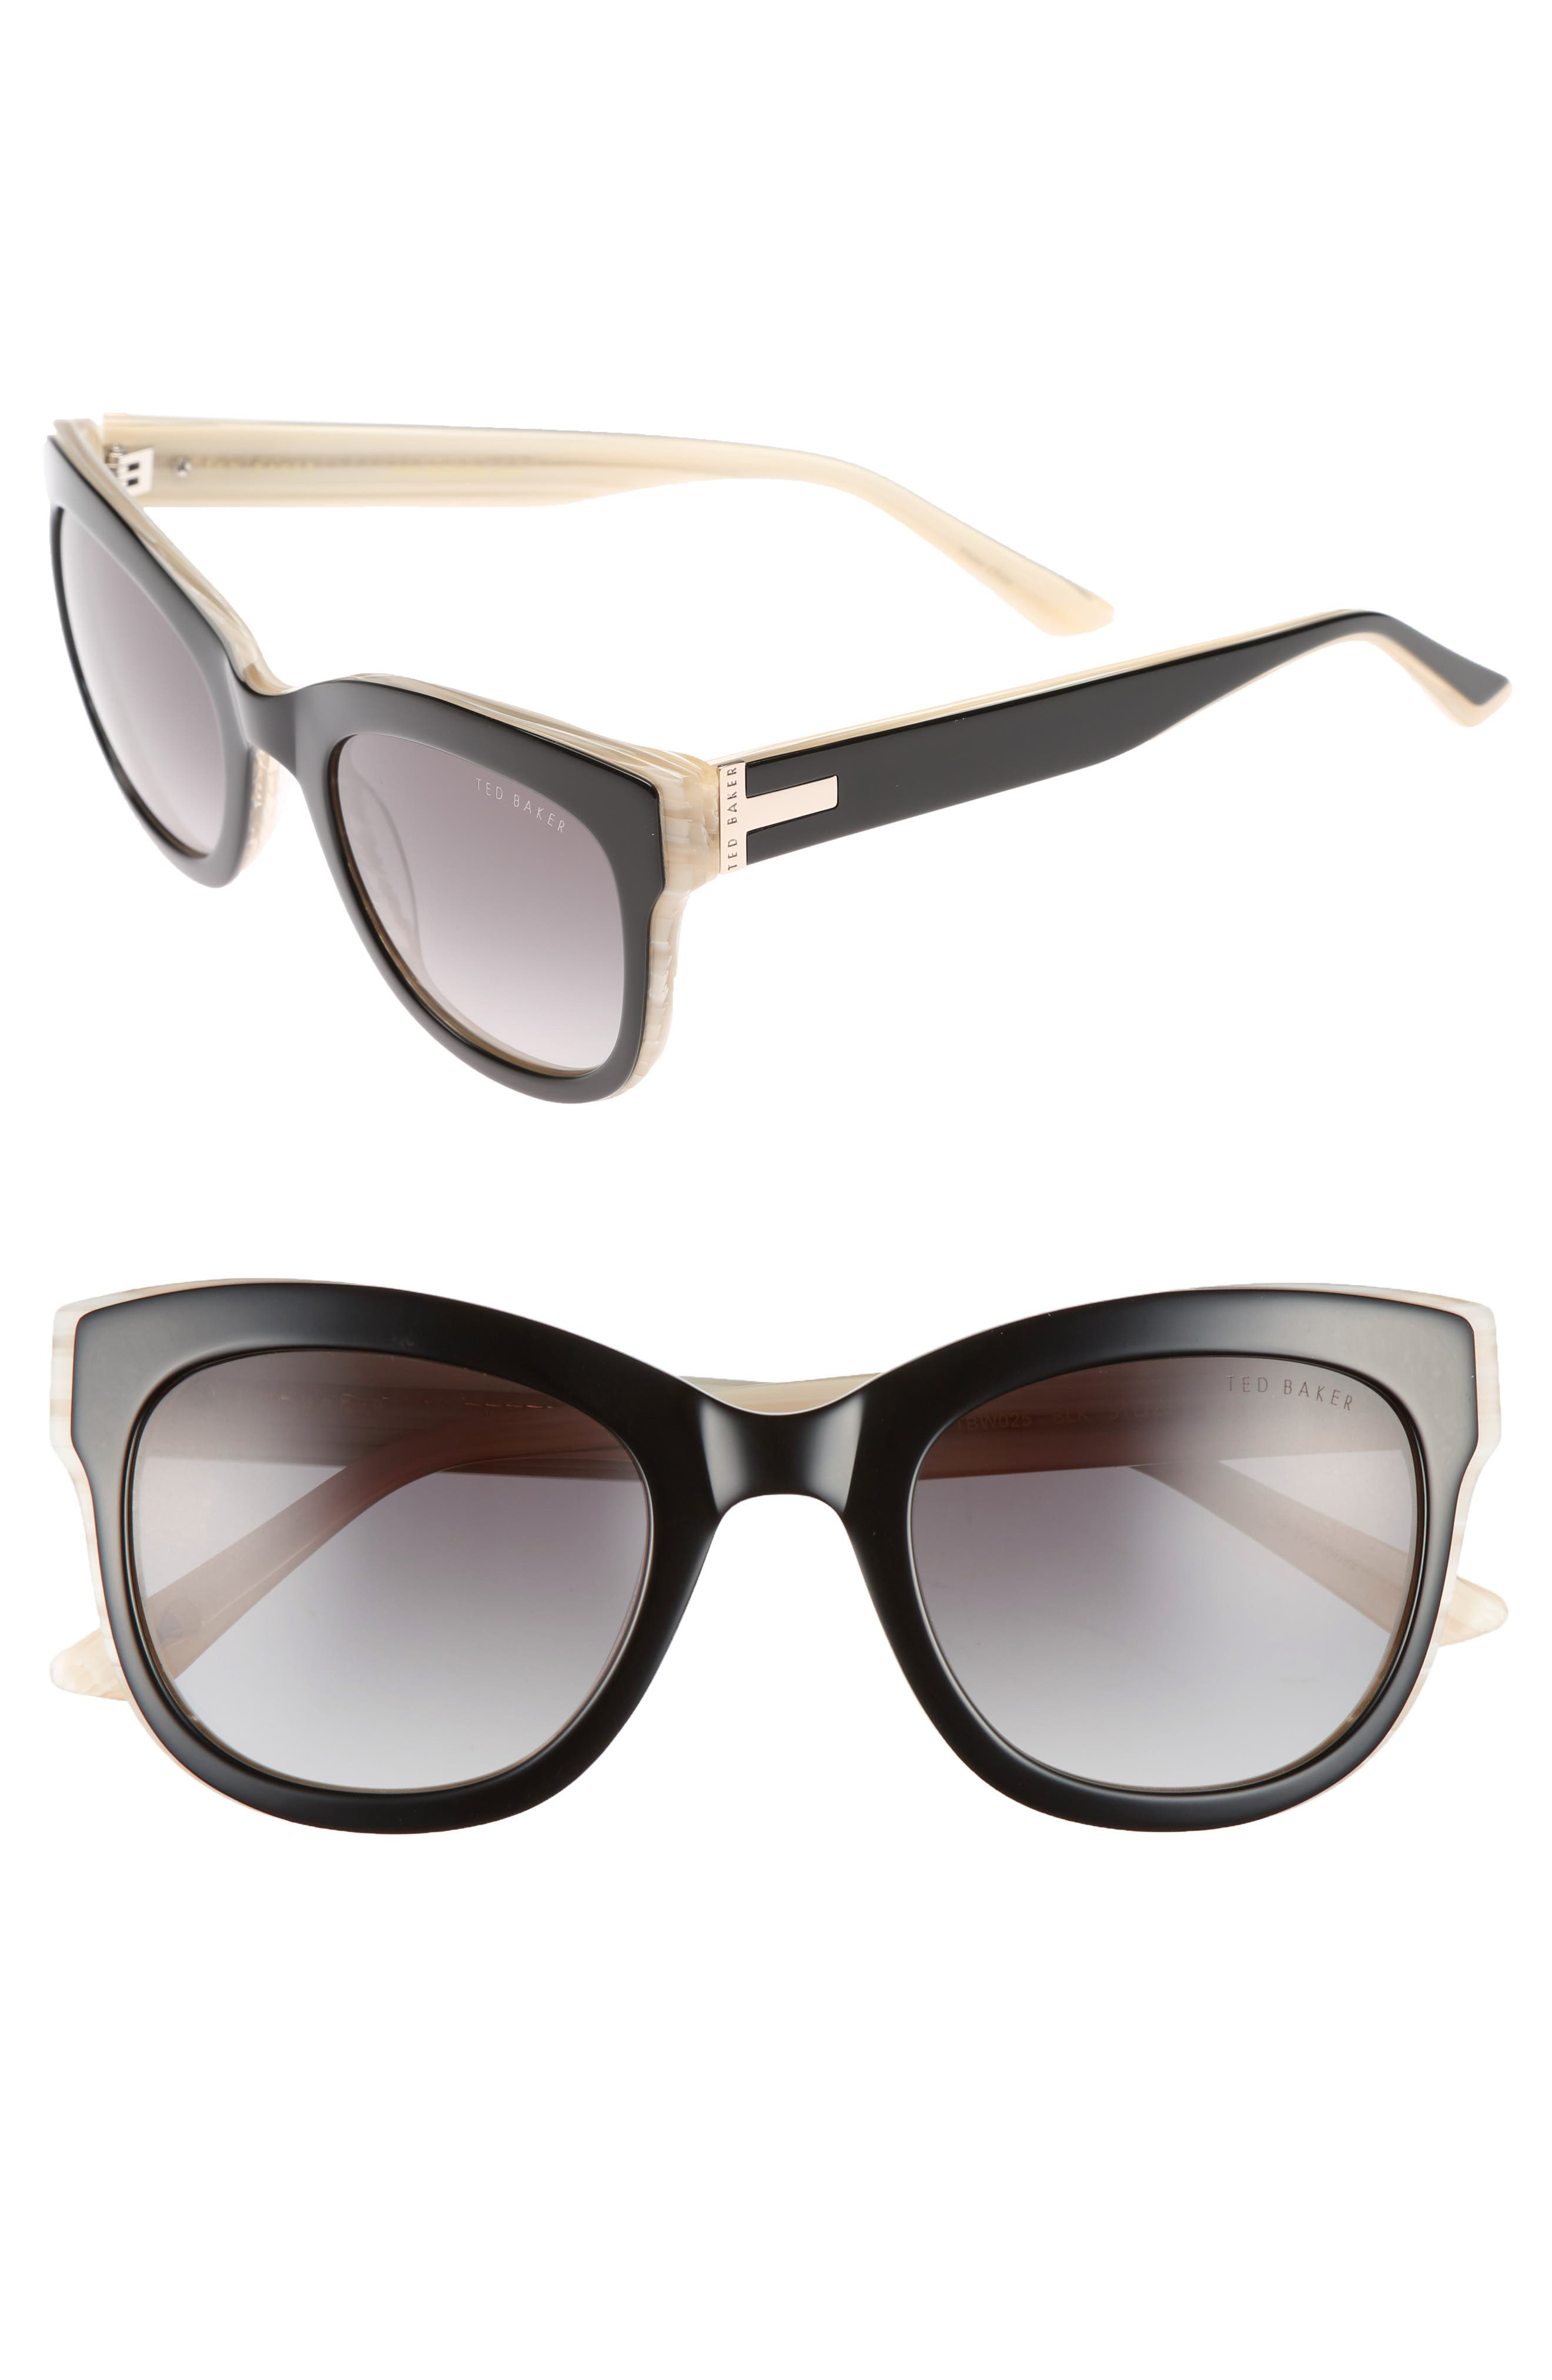 51mm Square Cat Eye Sunglasses,                             Main thumbnail 1, color,                             Black